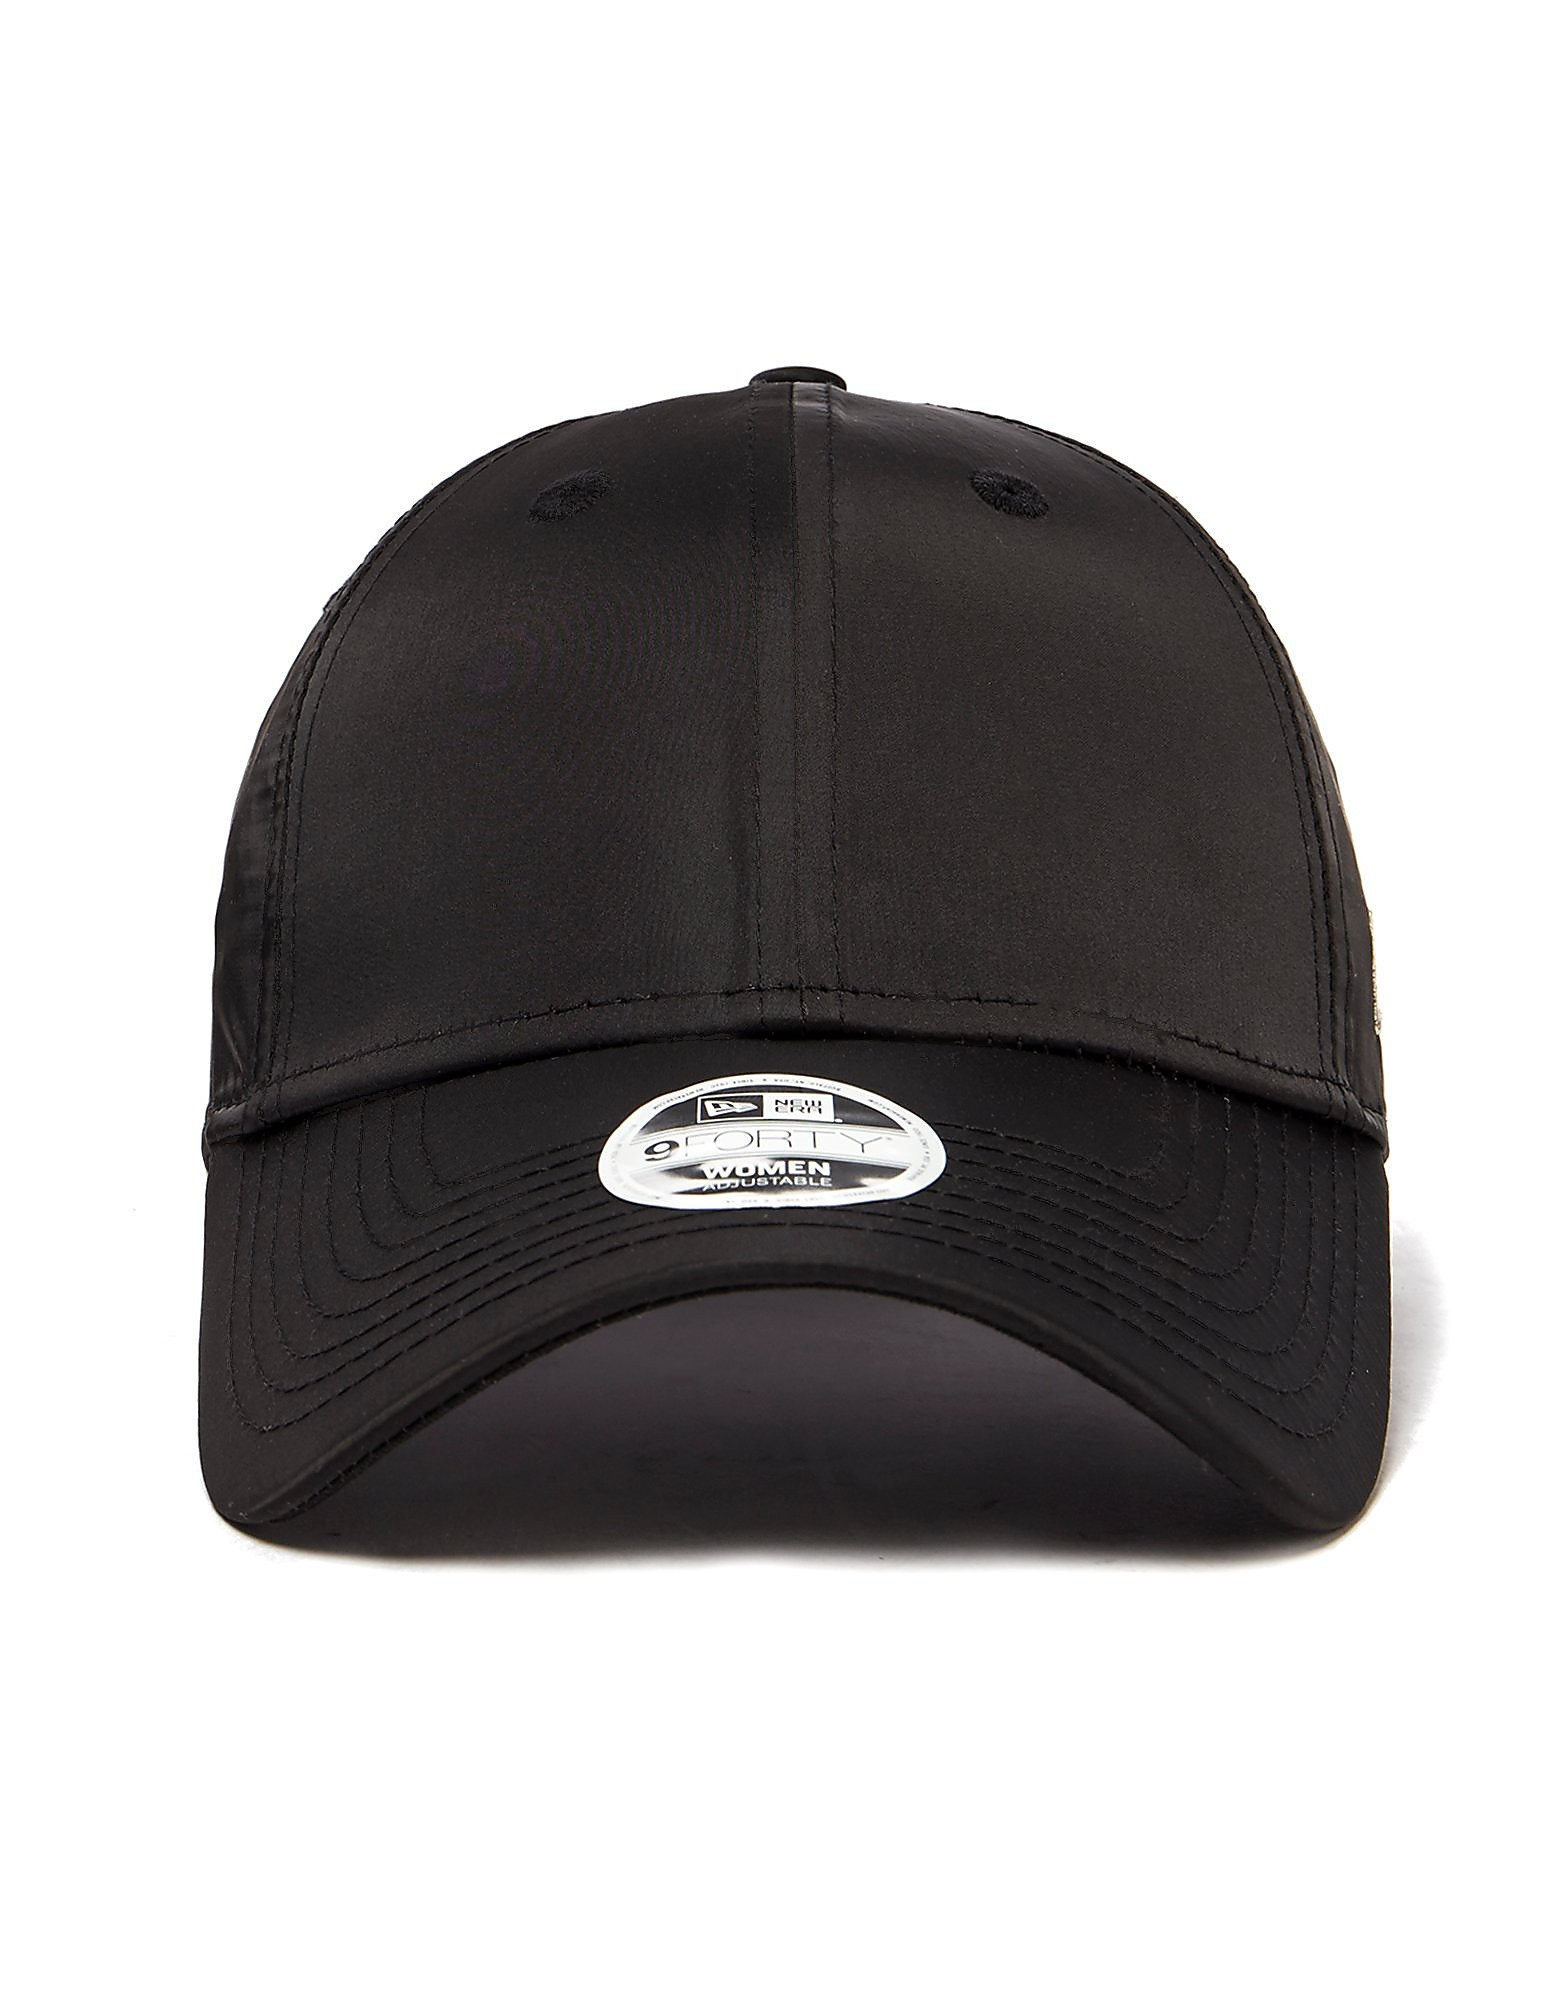 New Era 9FORTY Satin Cap